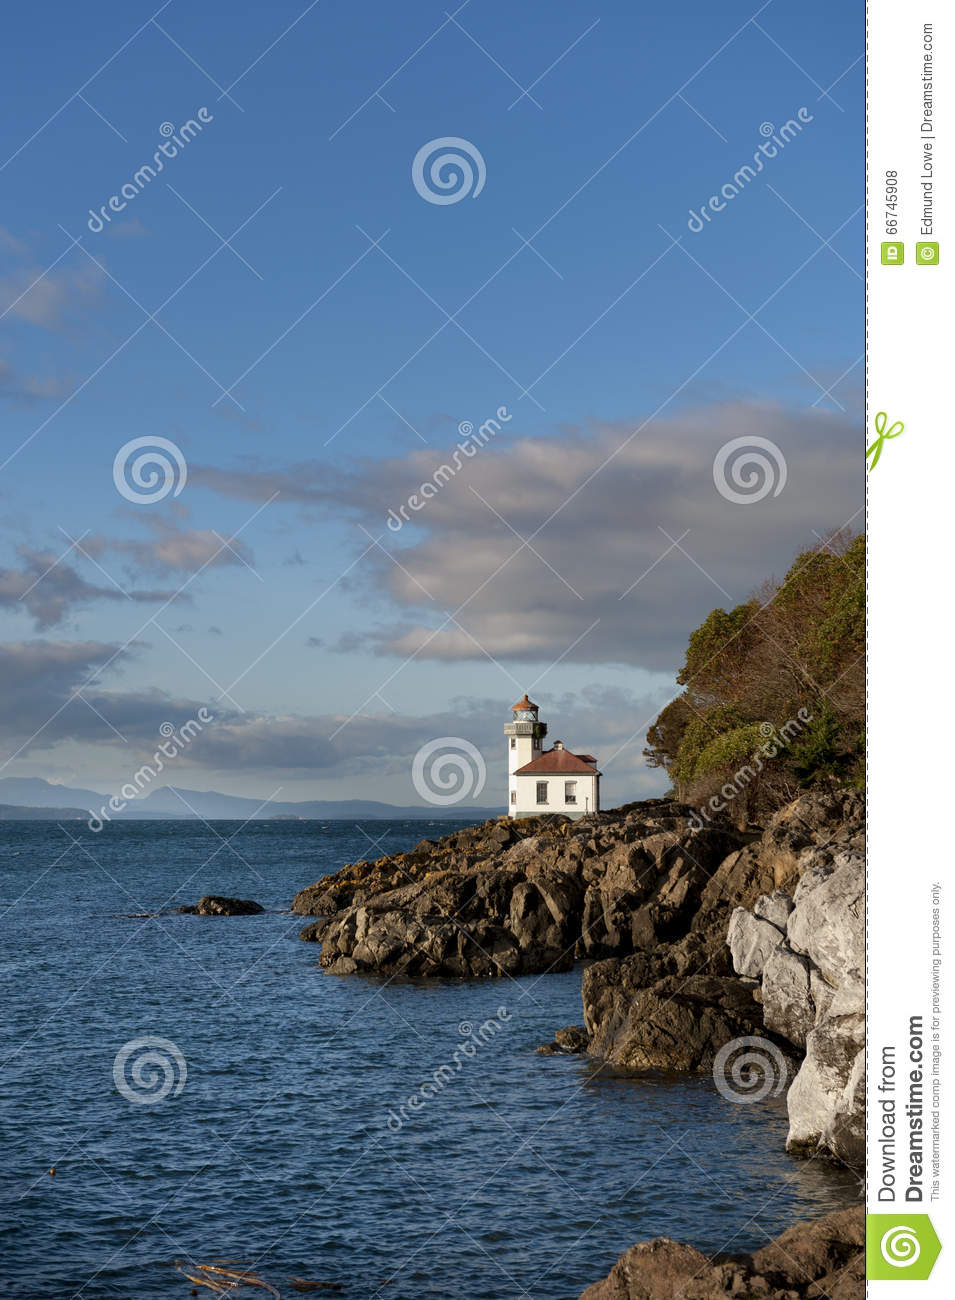 Line House Located In London: Line Kiln Lighthouse Stock Photo. Image Of Rocks, House